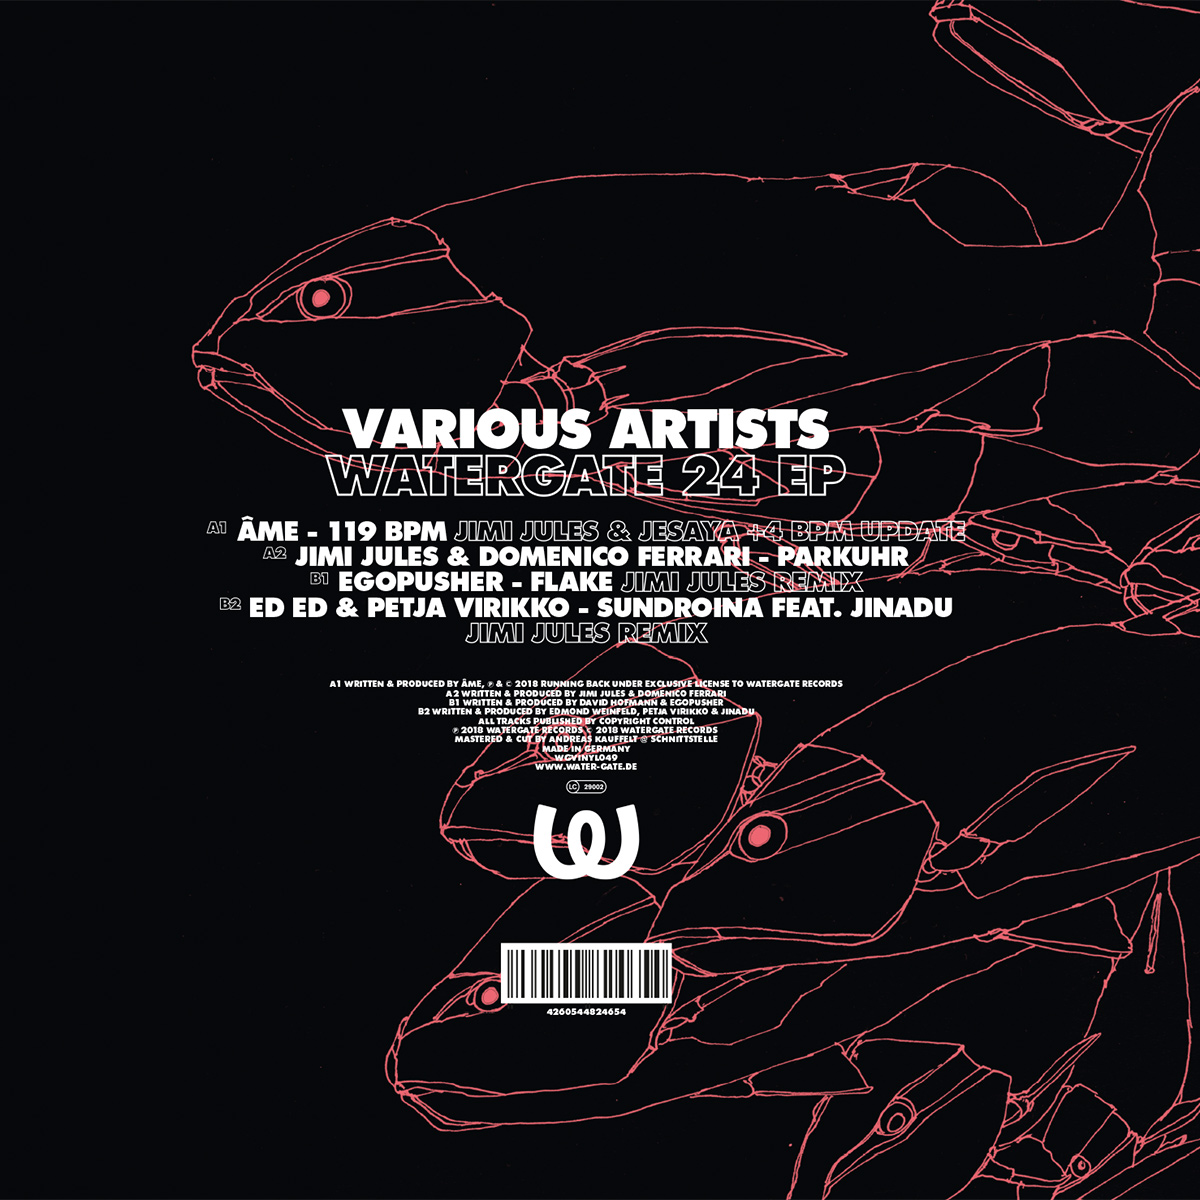 Various Artists Watergate 24 EP